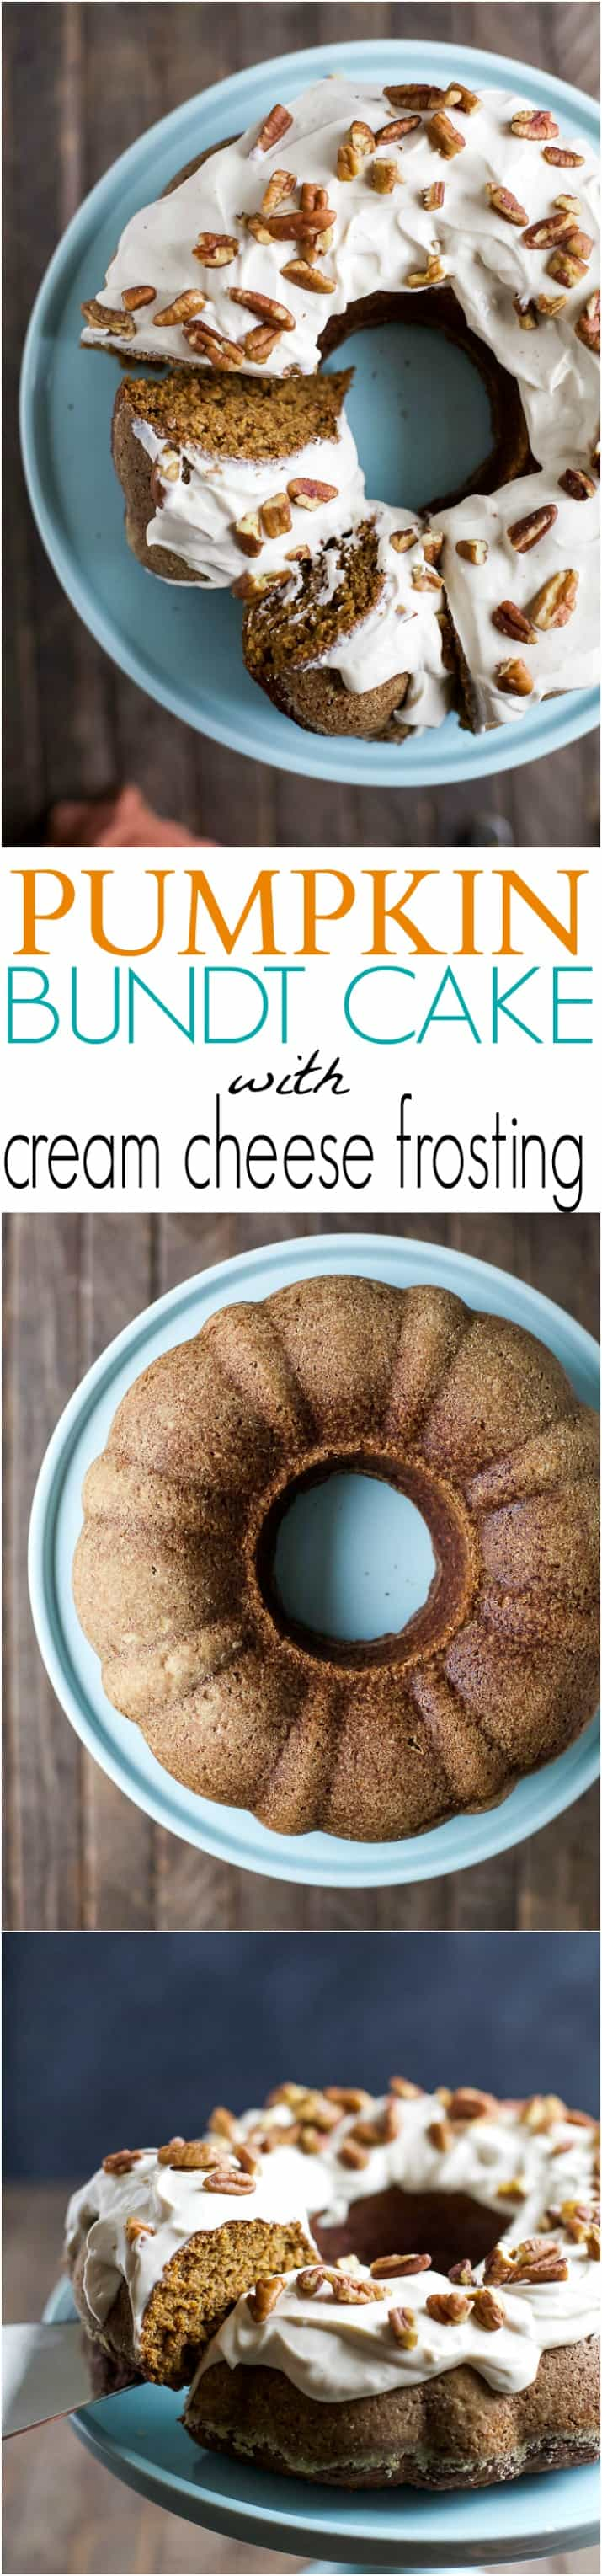 Pumpkin Bundt Cake With Cream Cheese Frosting Easy Healthy Recipes